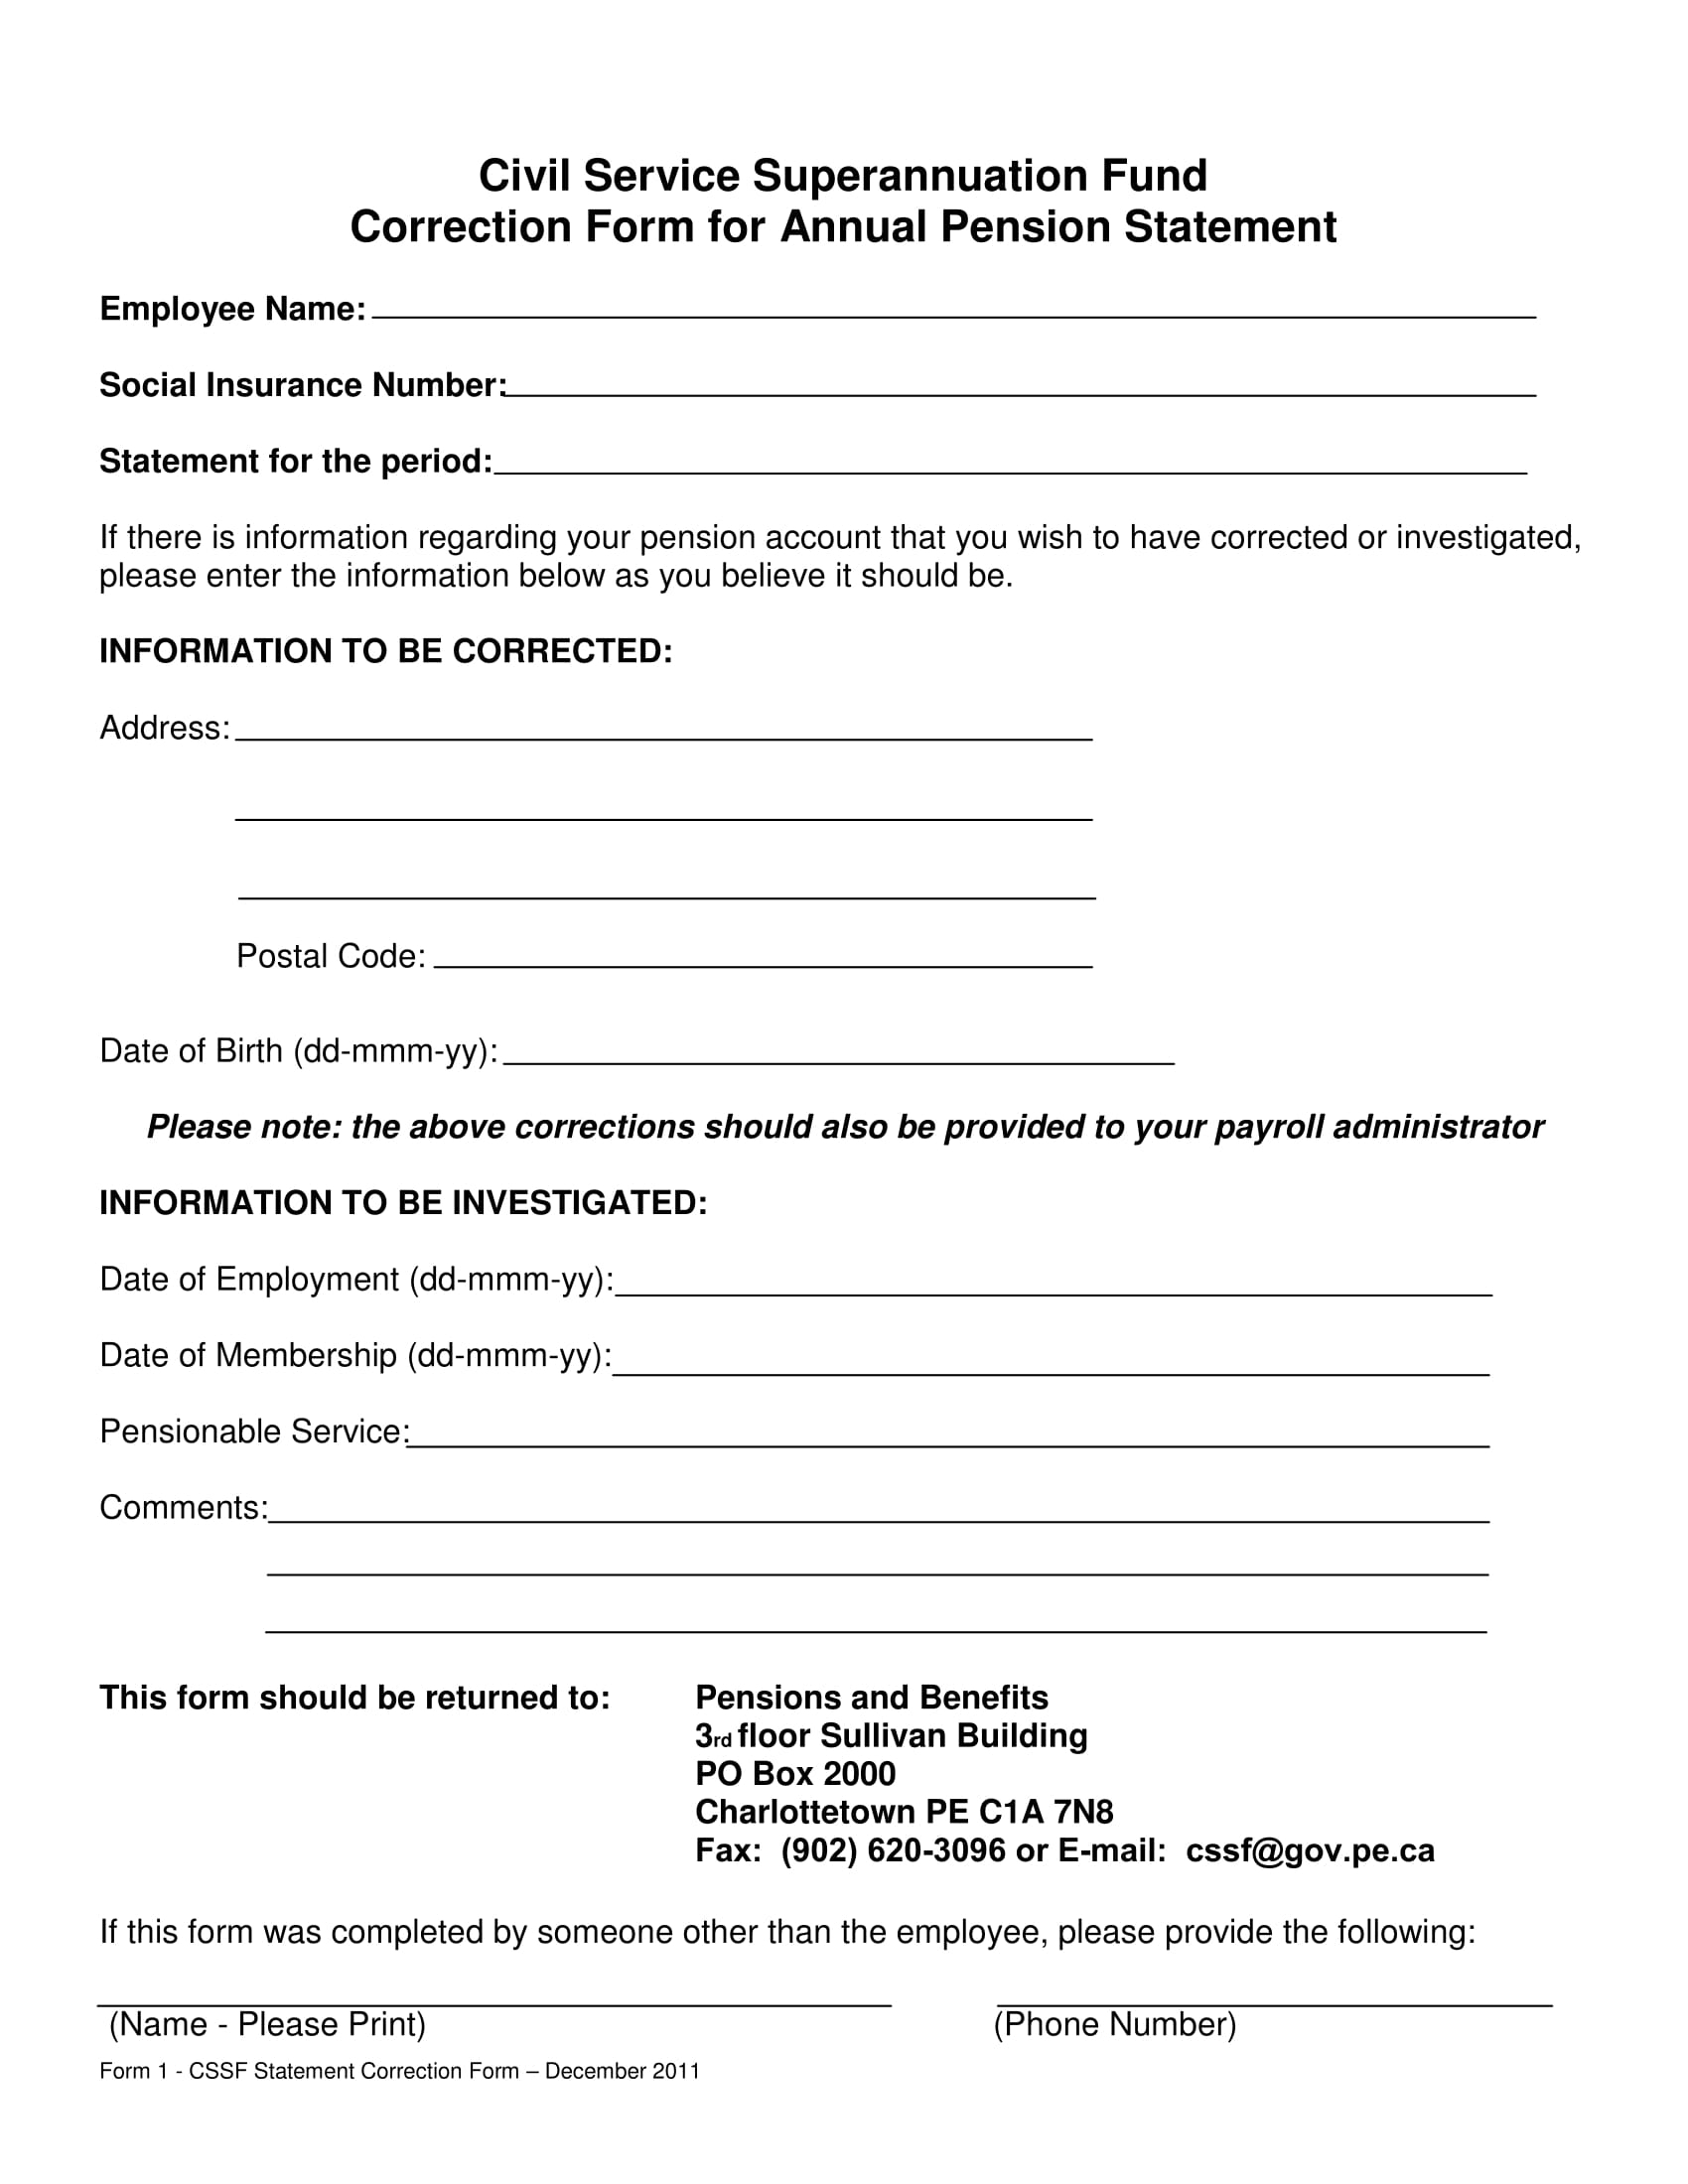 employee pension statement correction form 1